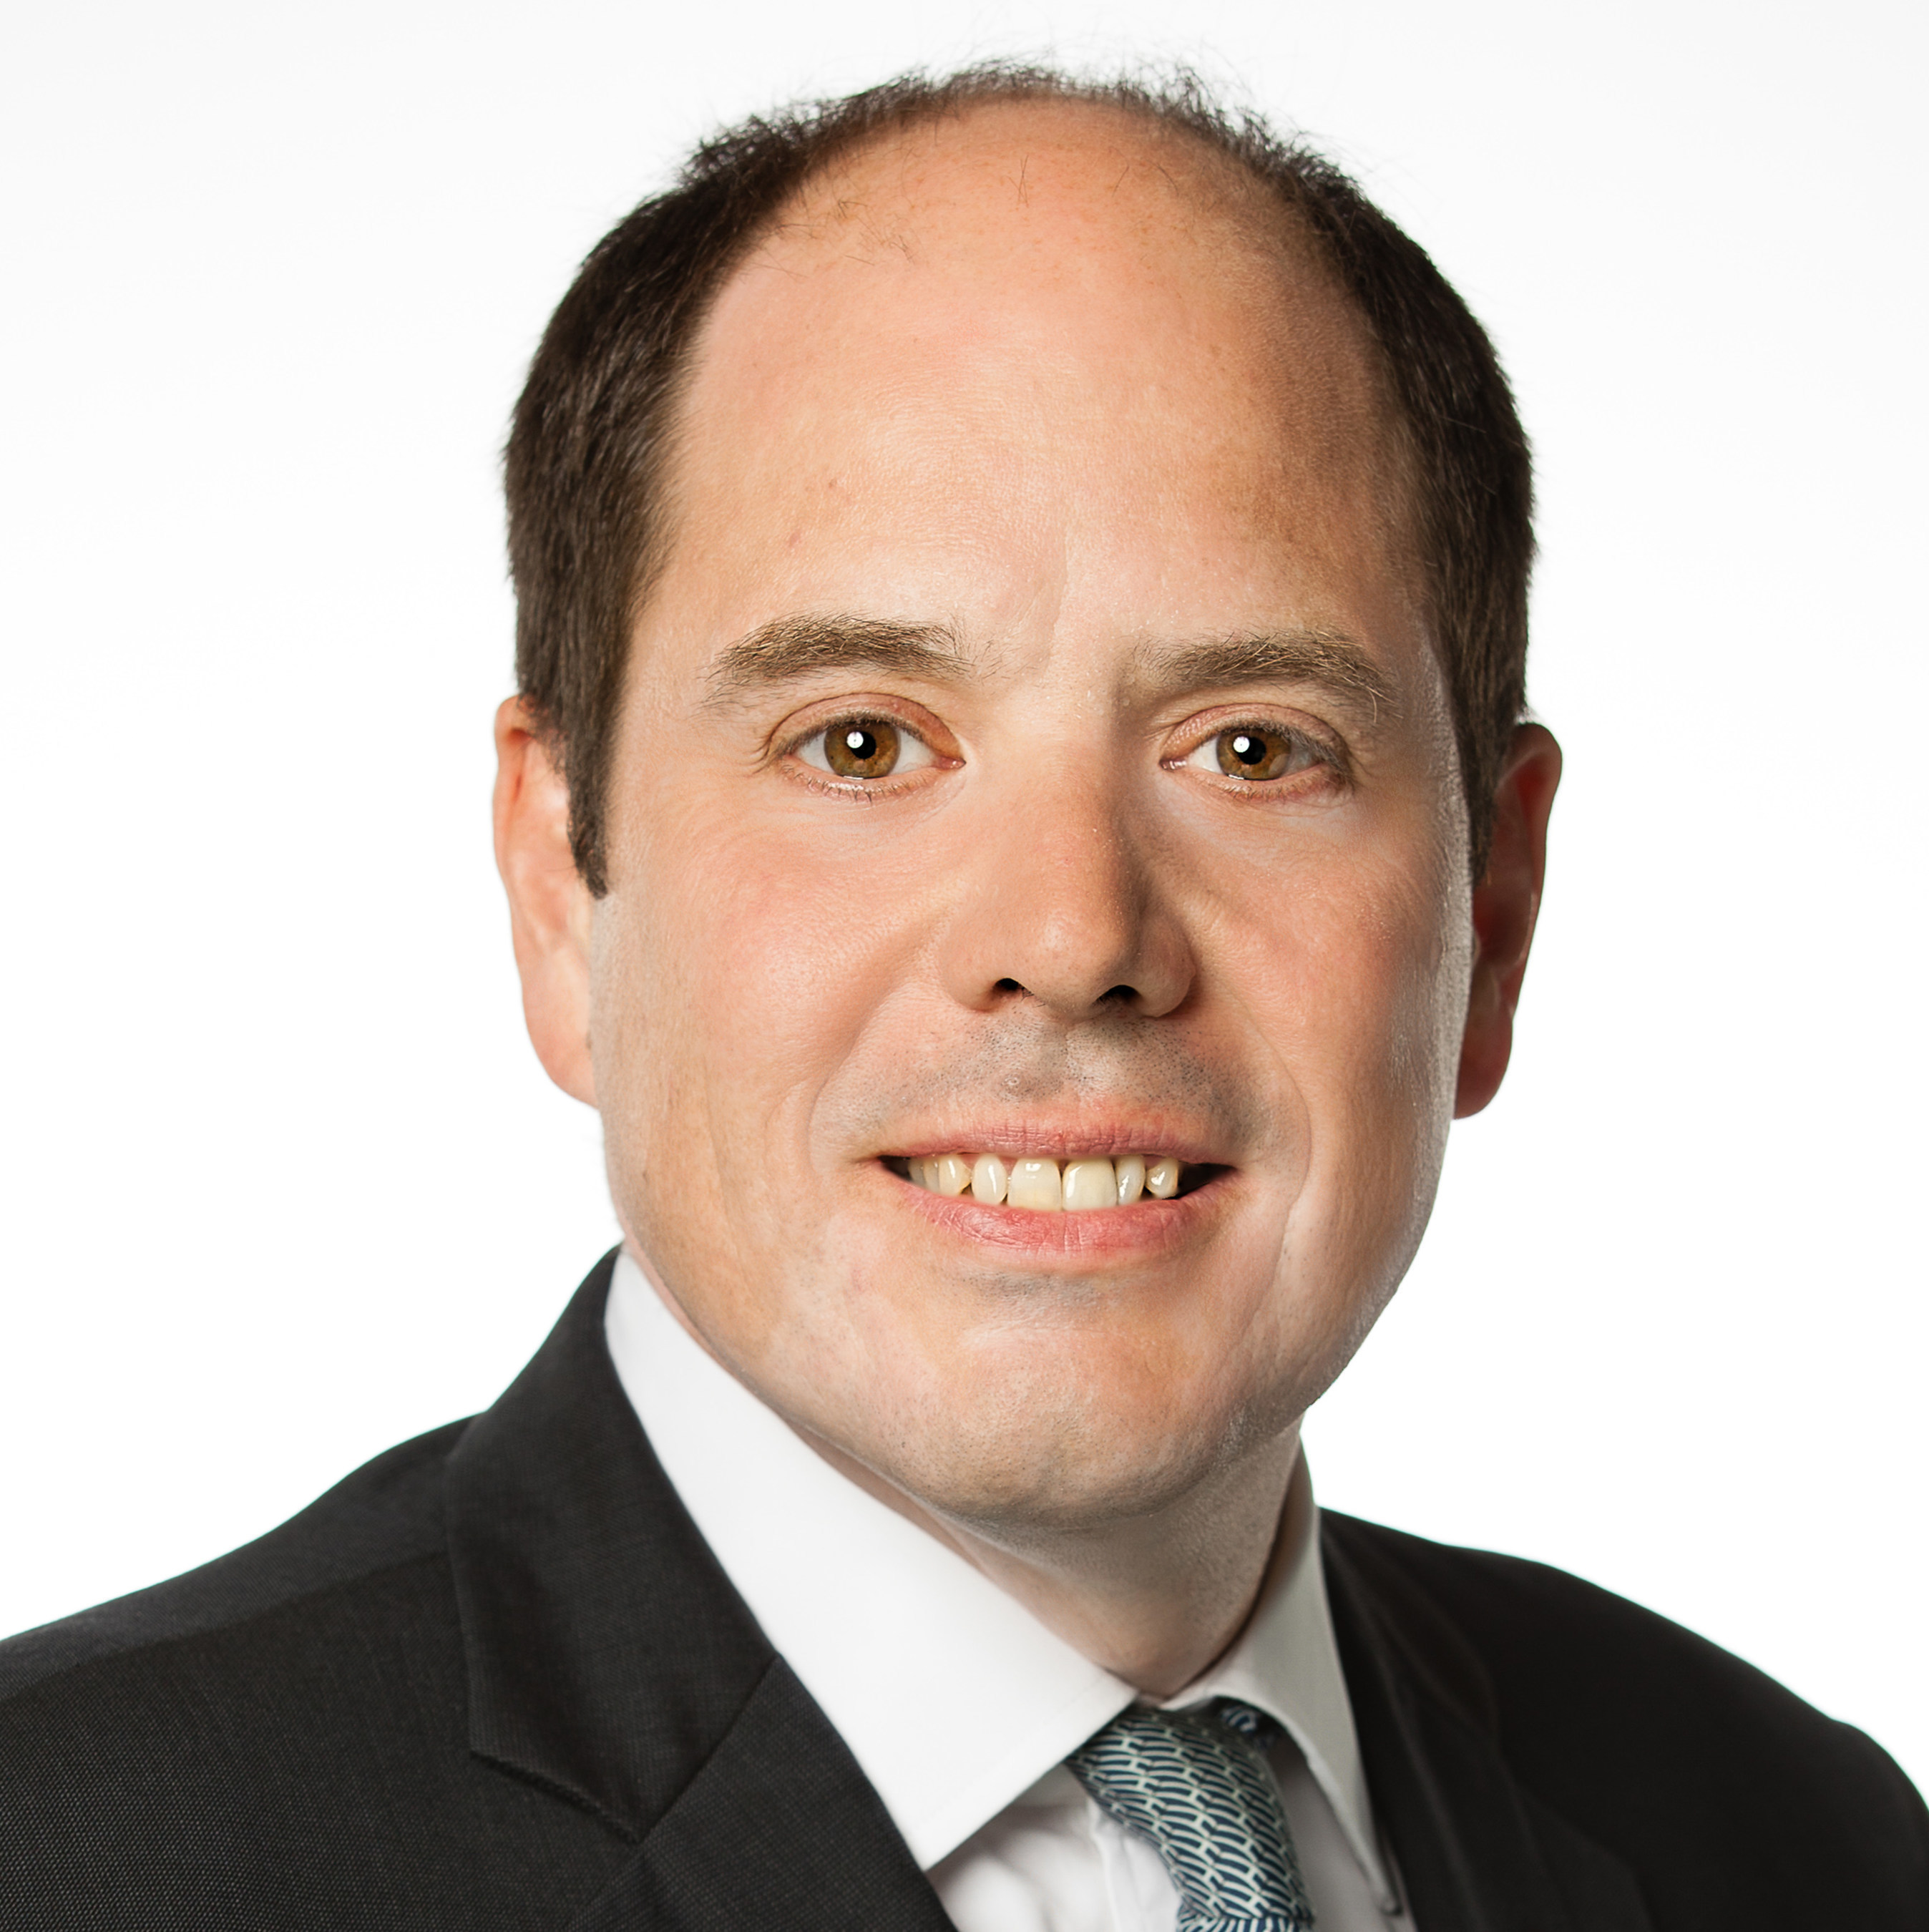 Tom Burnet has been named executive chairman for accesso Technology Group, PLC